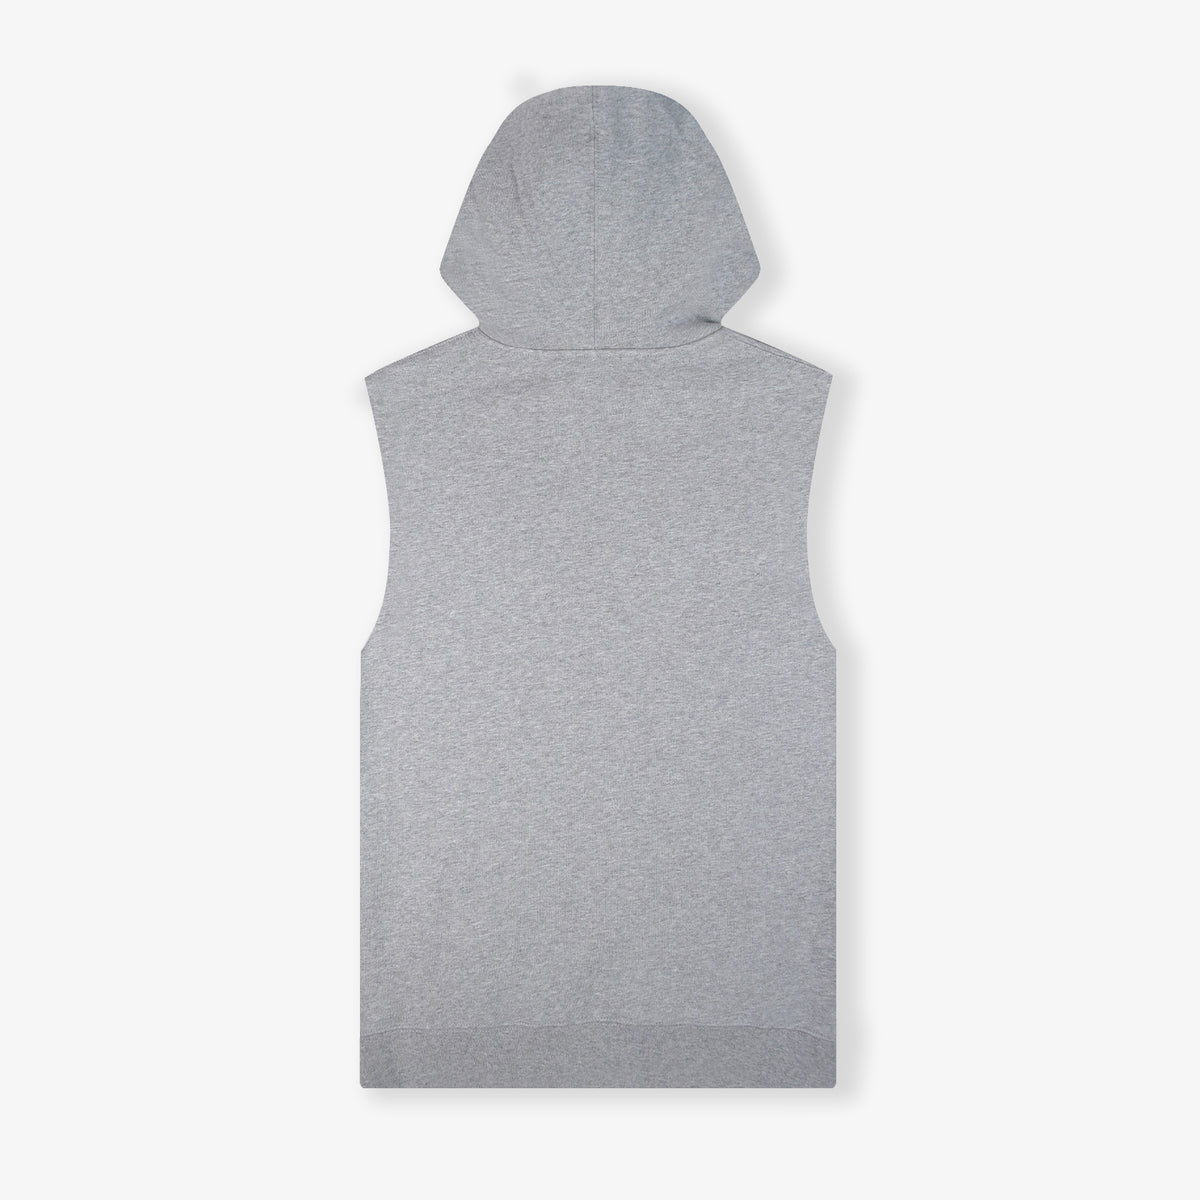 Throwback Sydney Vintage Pre-Game Cutoff Hood - Grey Marle